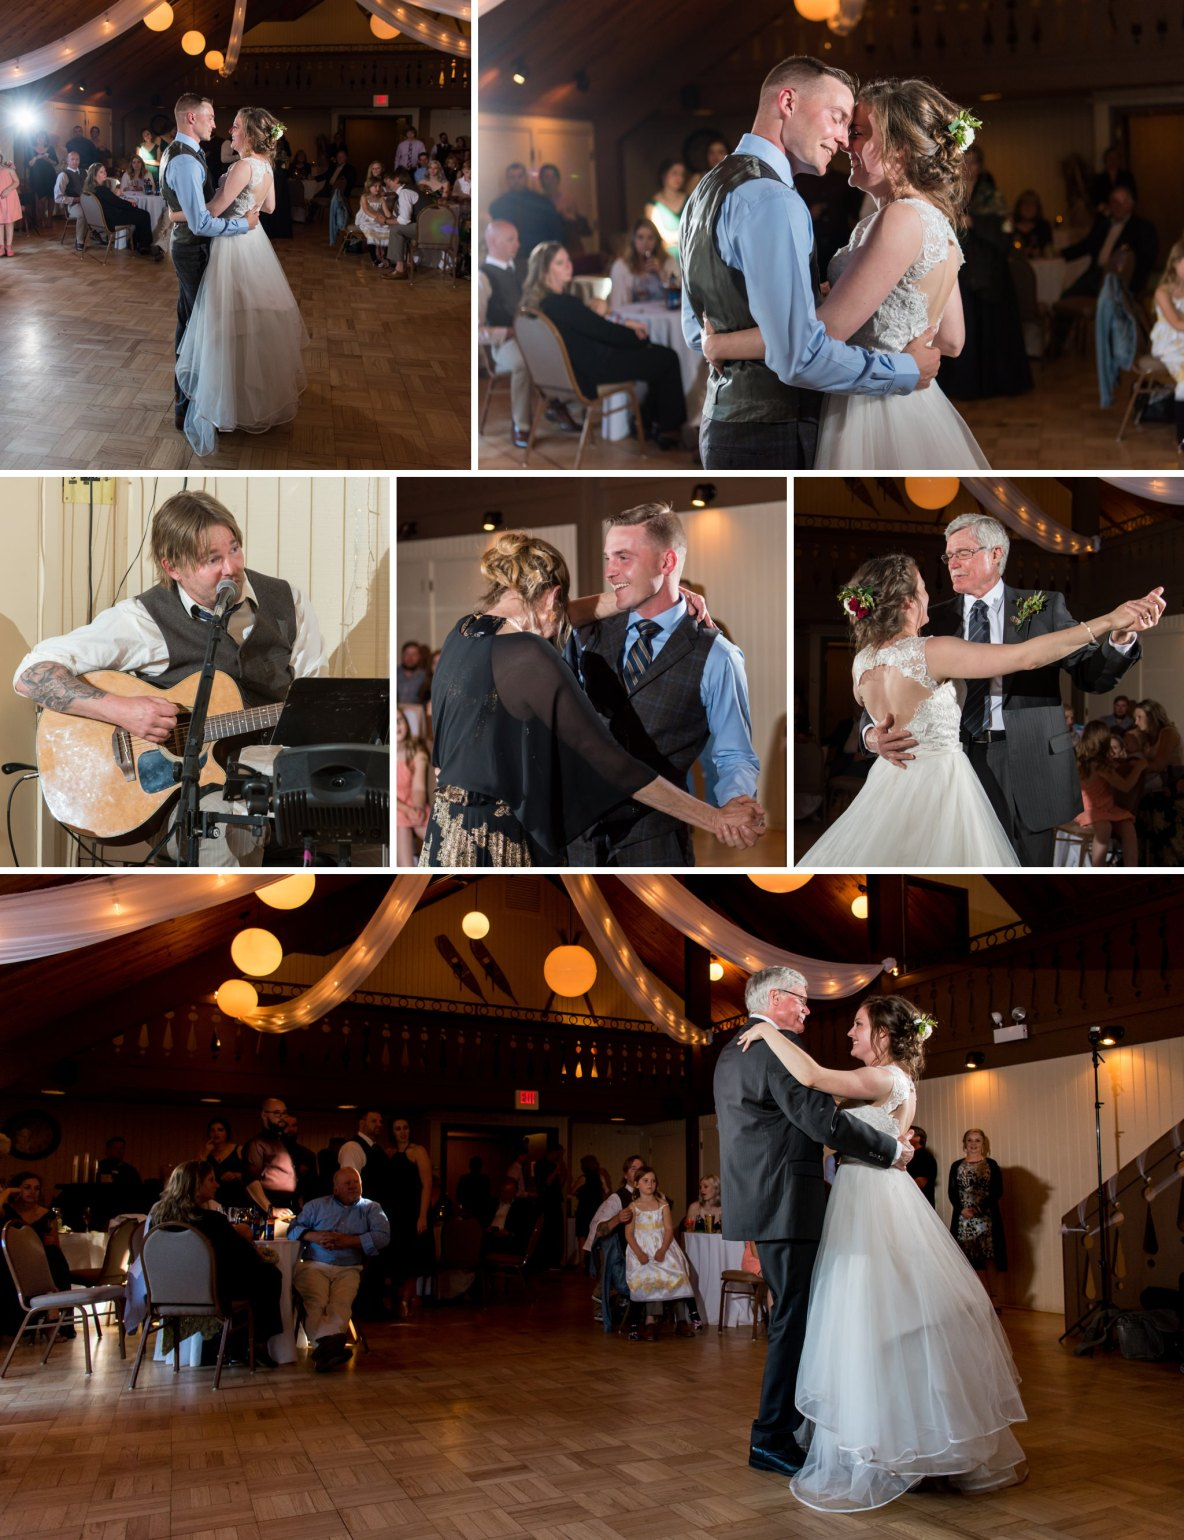 Photos of the bride dancing with the groom as well as her father at the wedding reception.